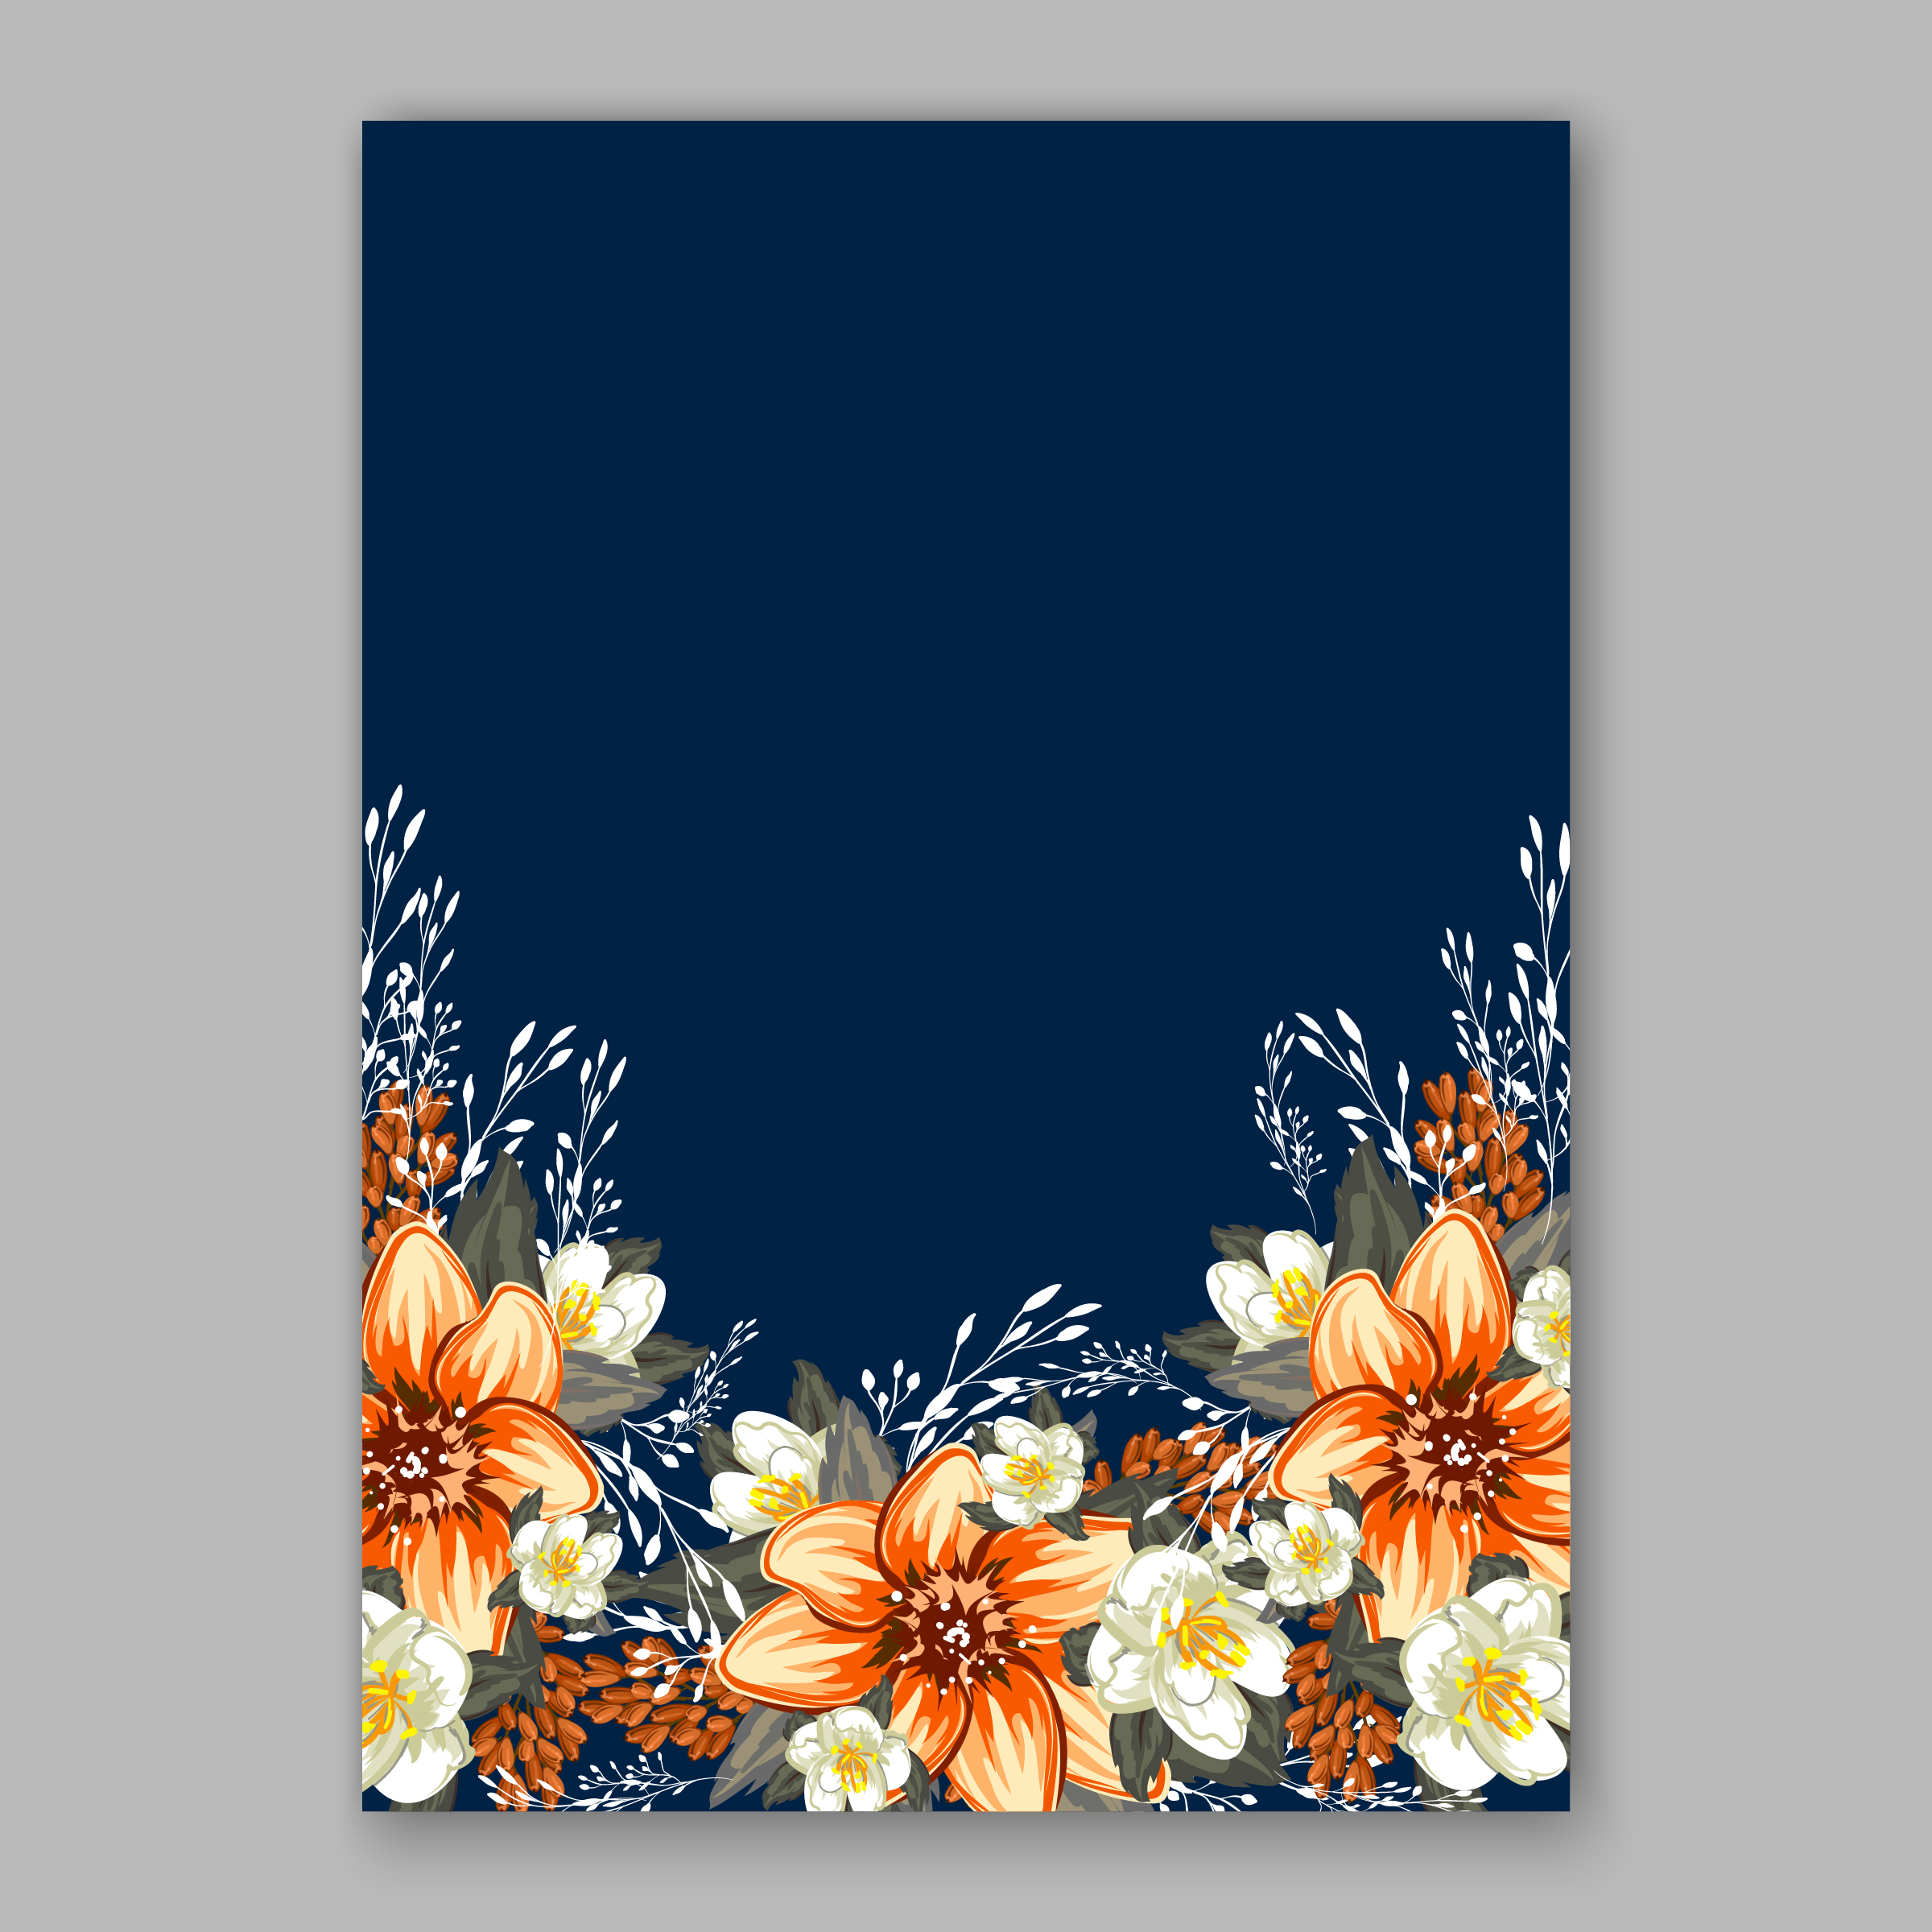 Background For Wedding Invitation: Handpainted Flowers Wedding Invitations Invitations